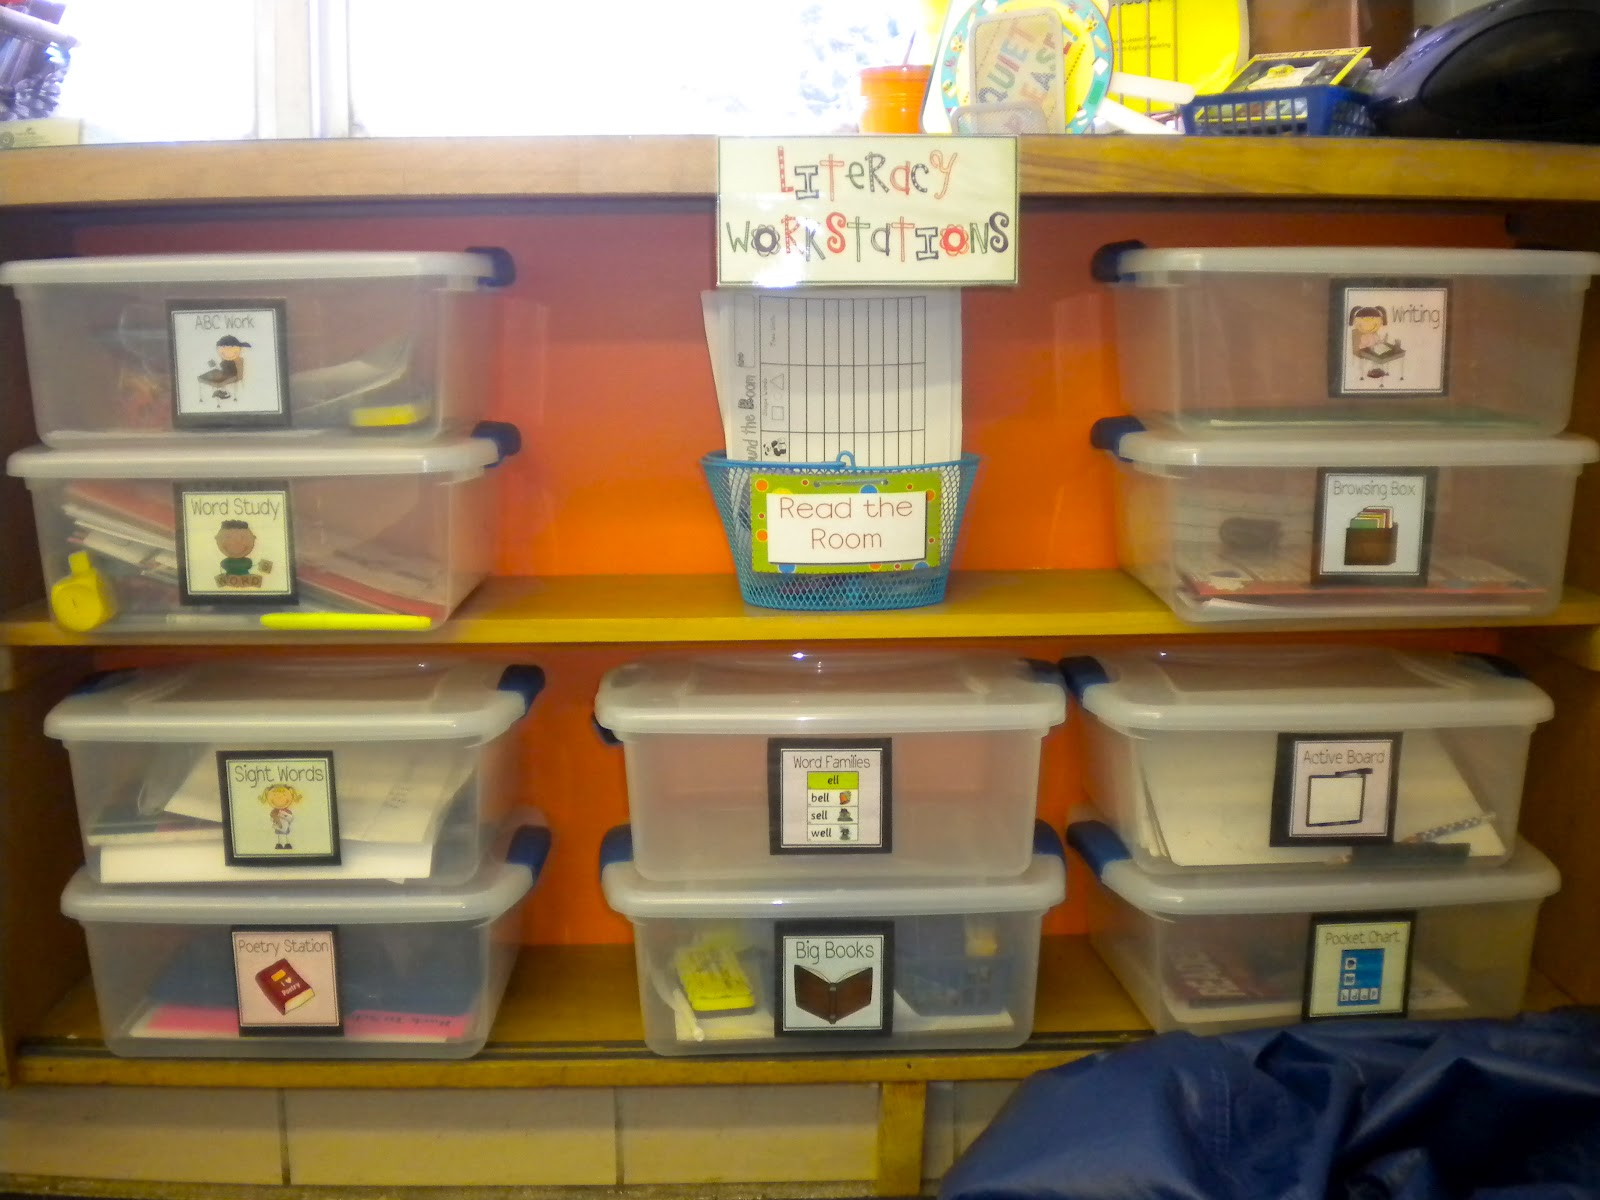 Primary Possibilities: Literacy Workstations